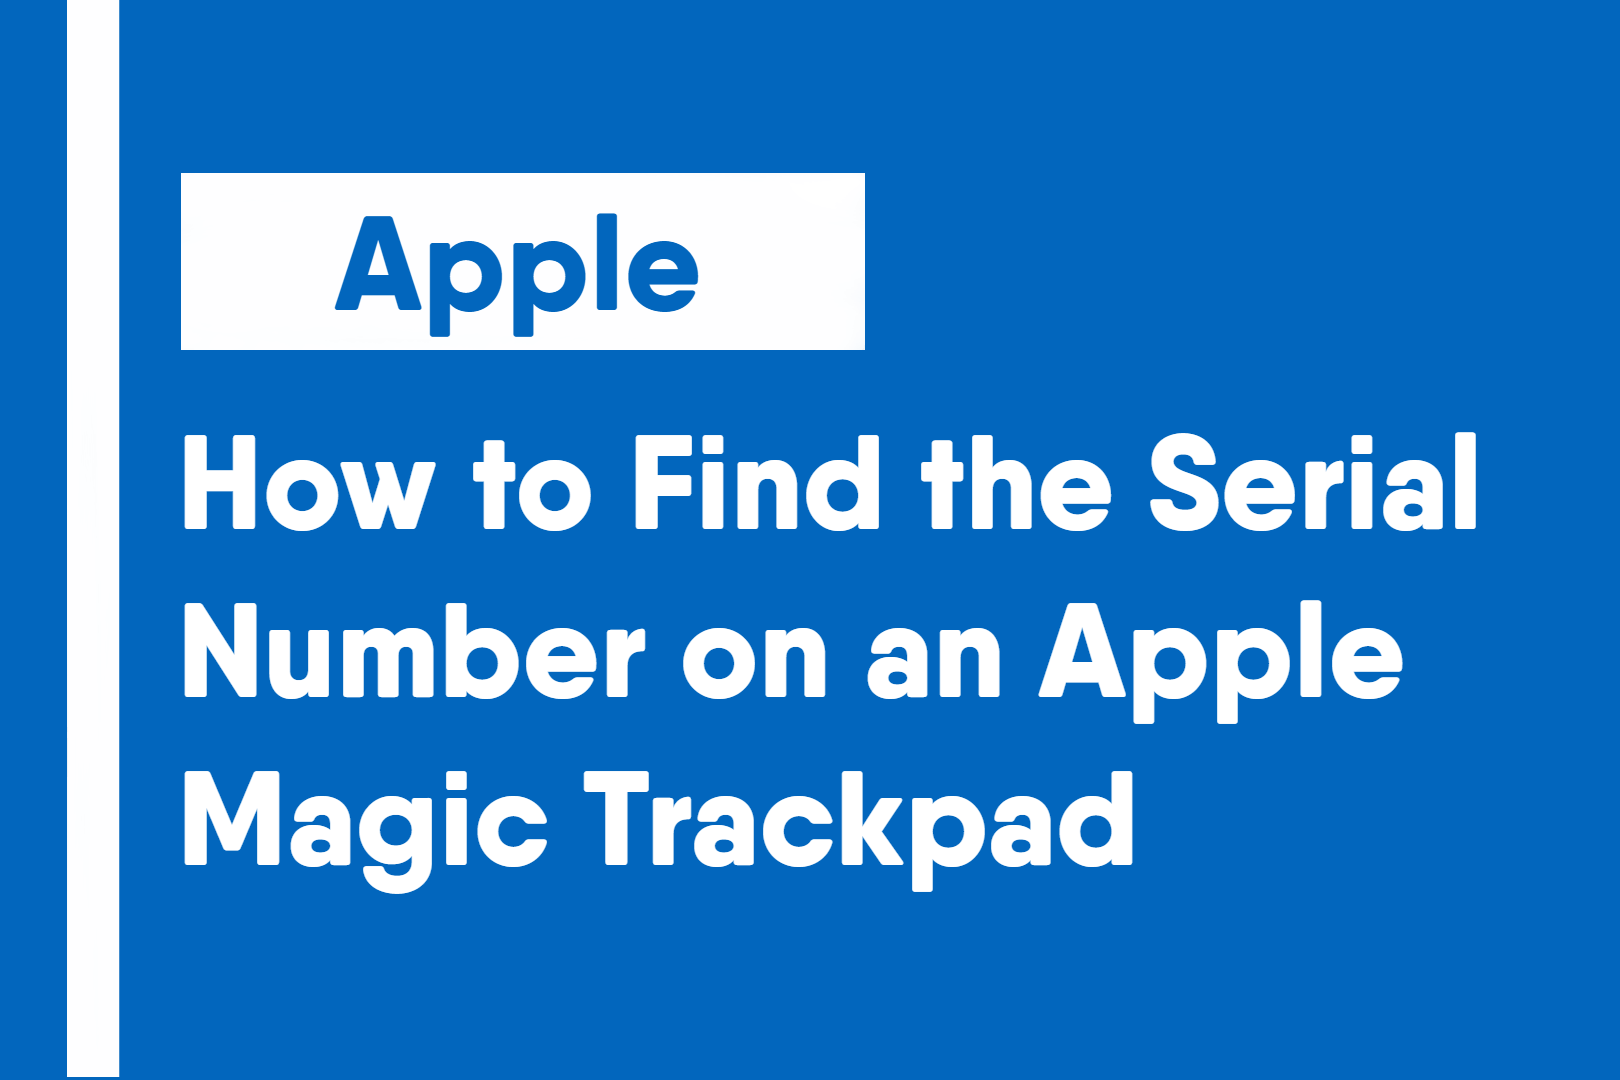 How to Find the Serial Number on an Apple Magic Trackpad